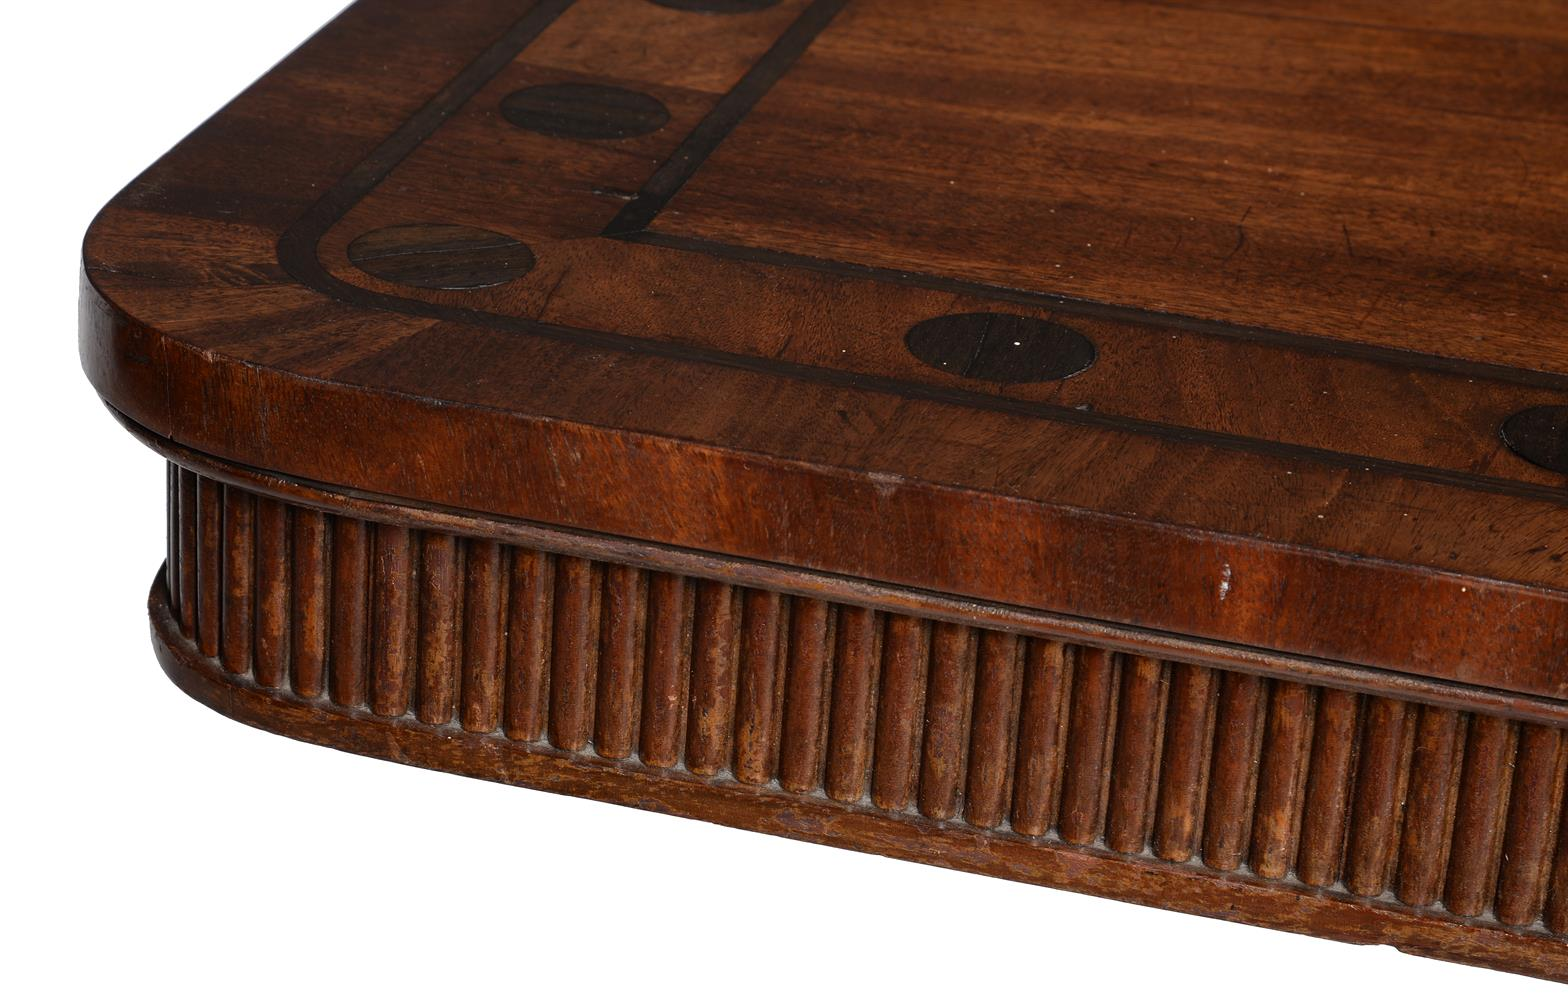 Y A PAIR OF REGENCY MAHOGANY AND MACASSAR EBONY INLAID LIBRARY OR SIDE TABLES, CIRCA 1820 - Image 5 of 5